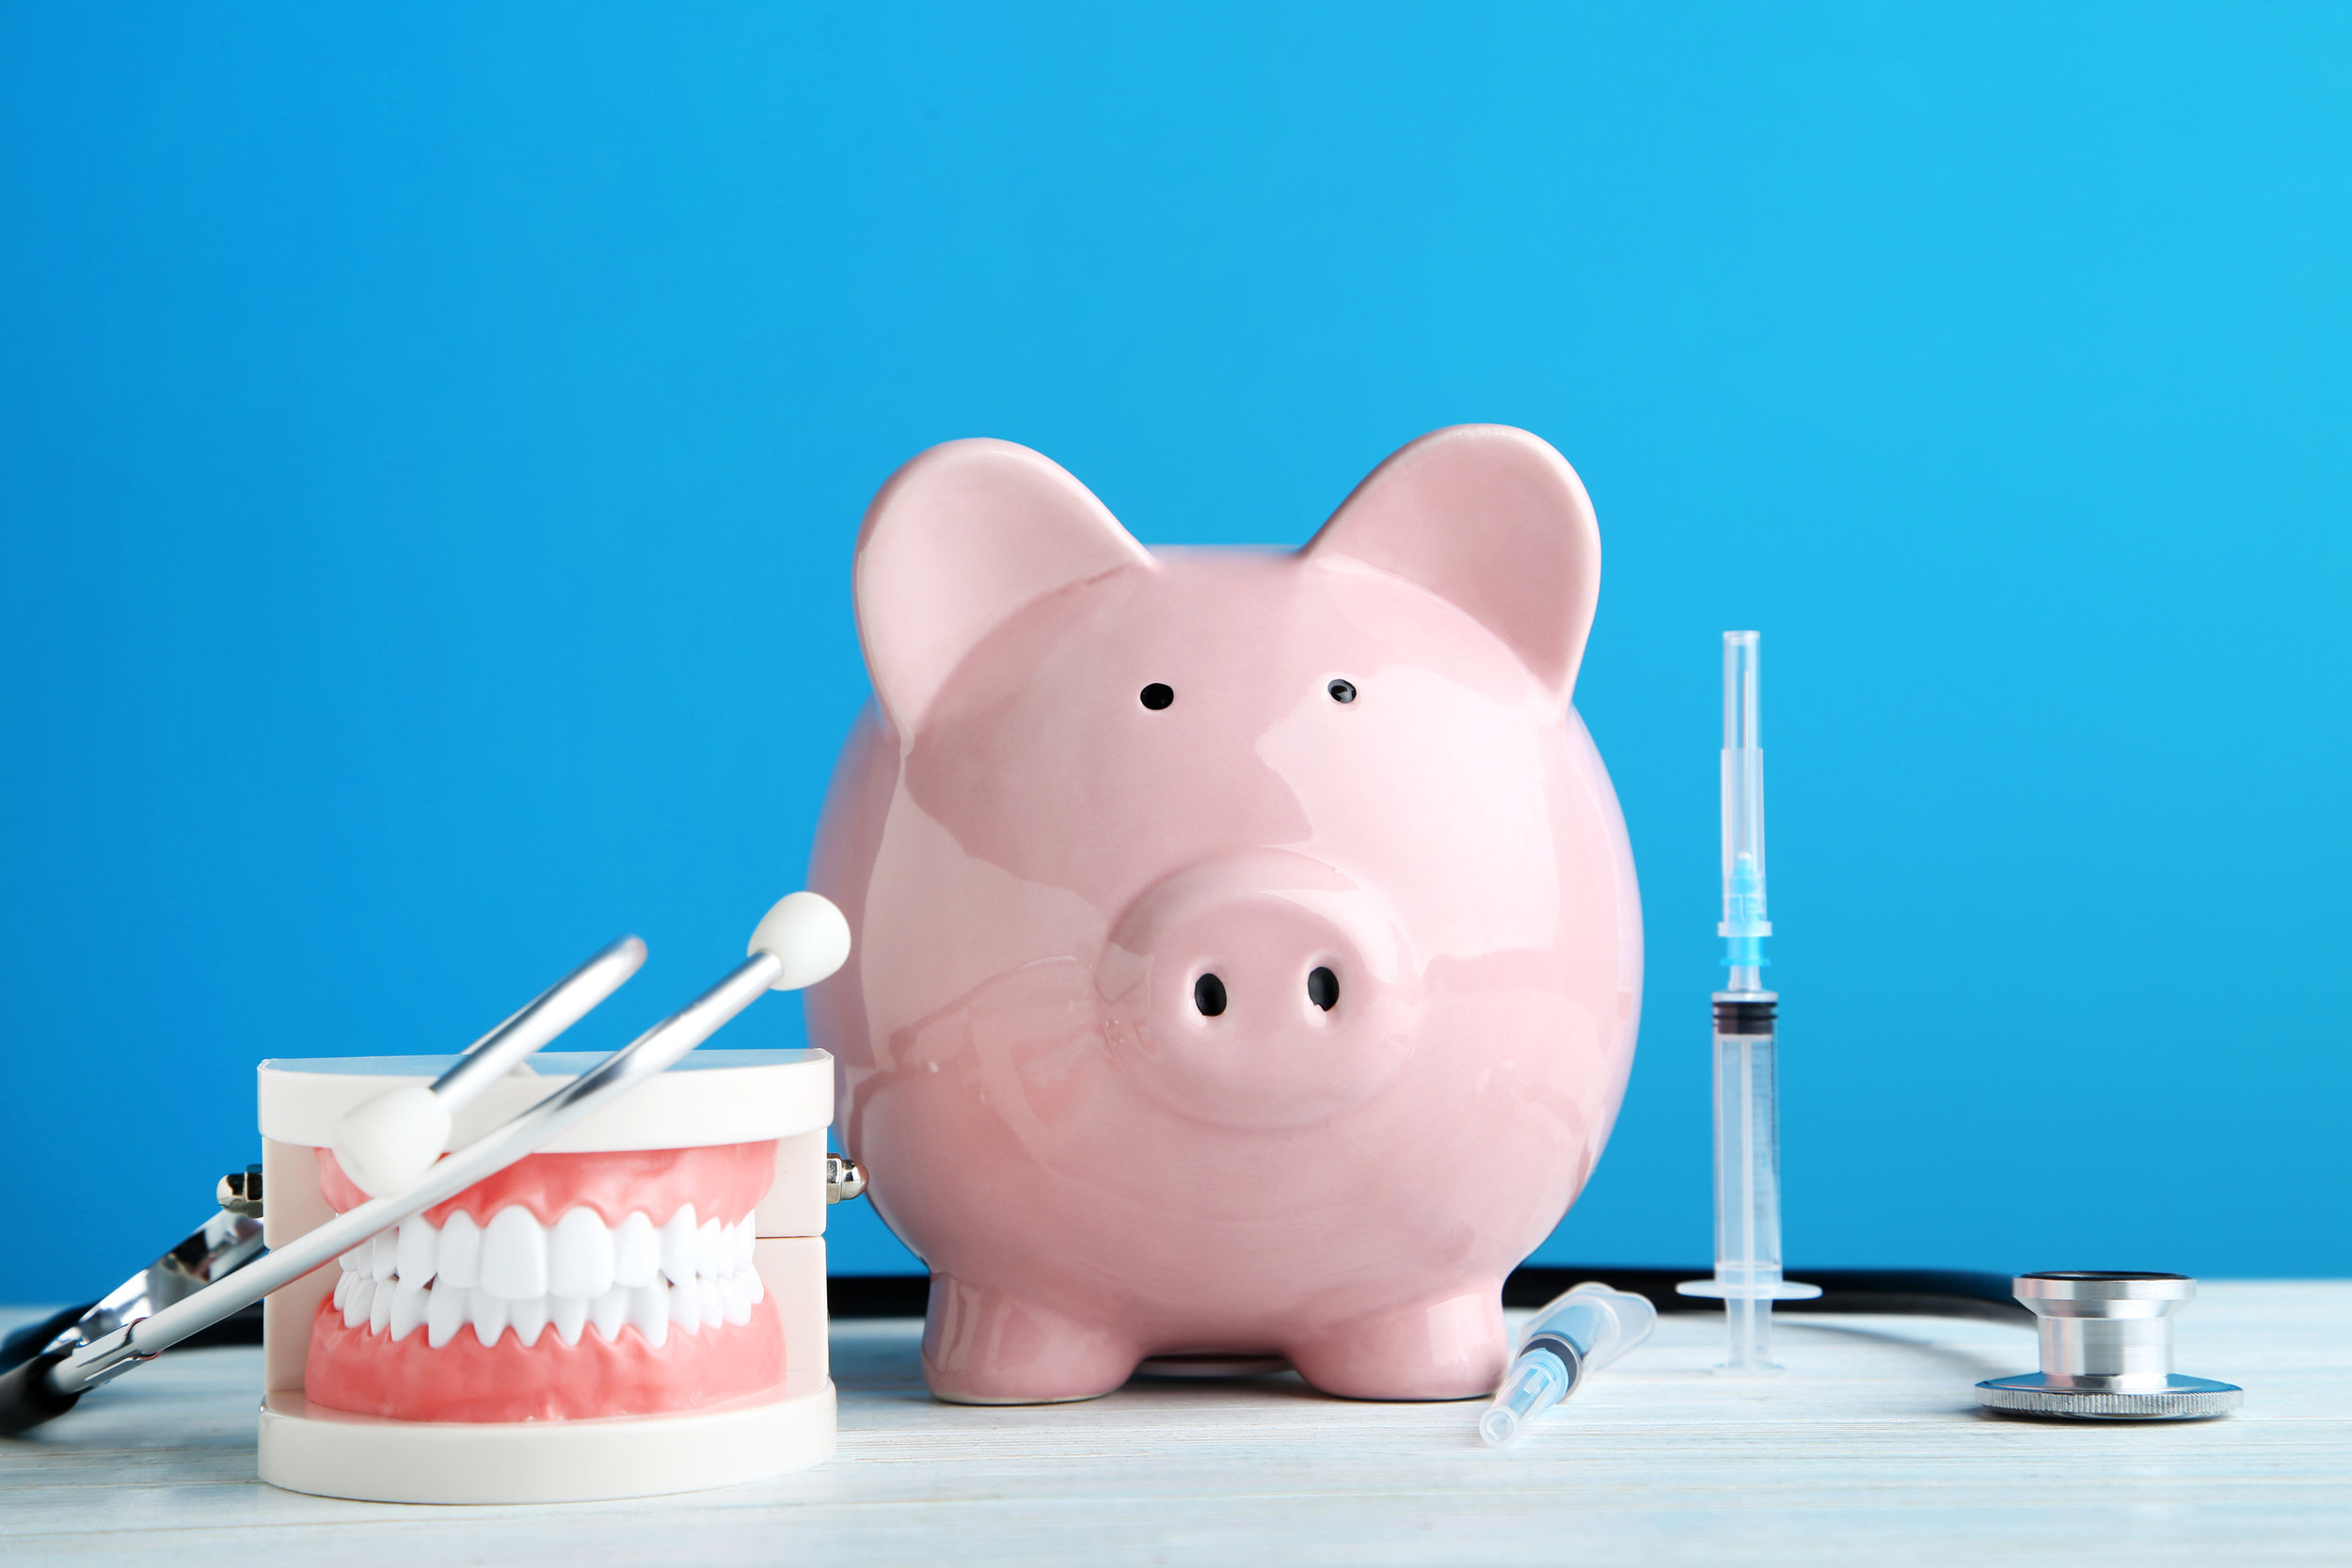 Pink piggy bank with stethoscope, syringe and teeth model on blue background